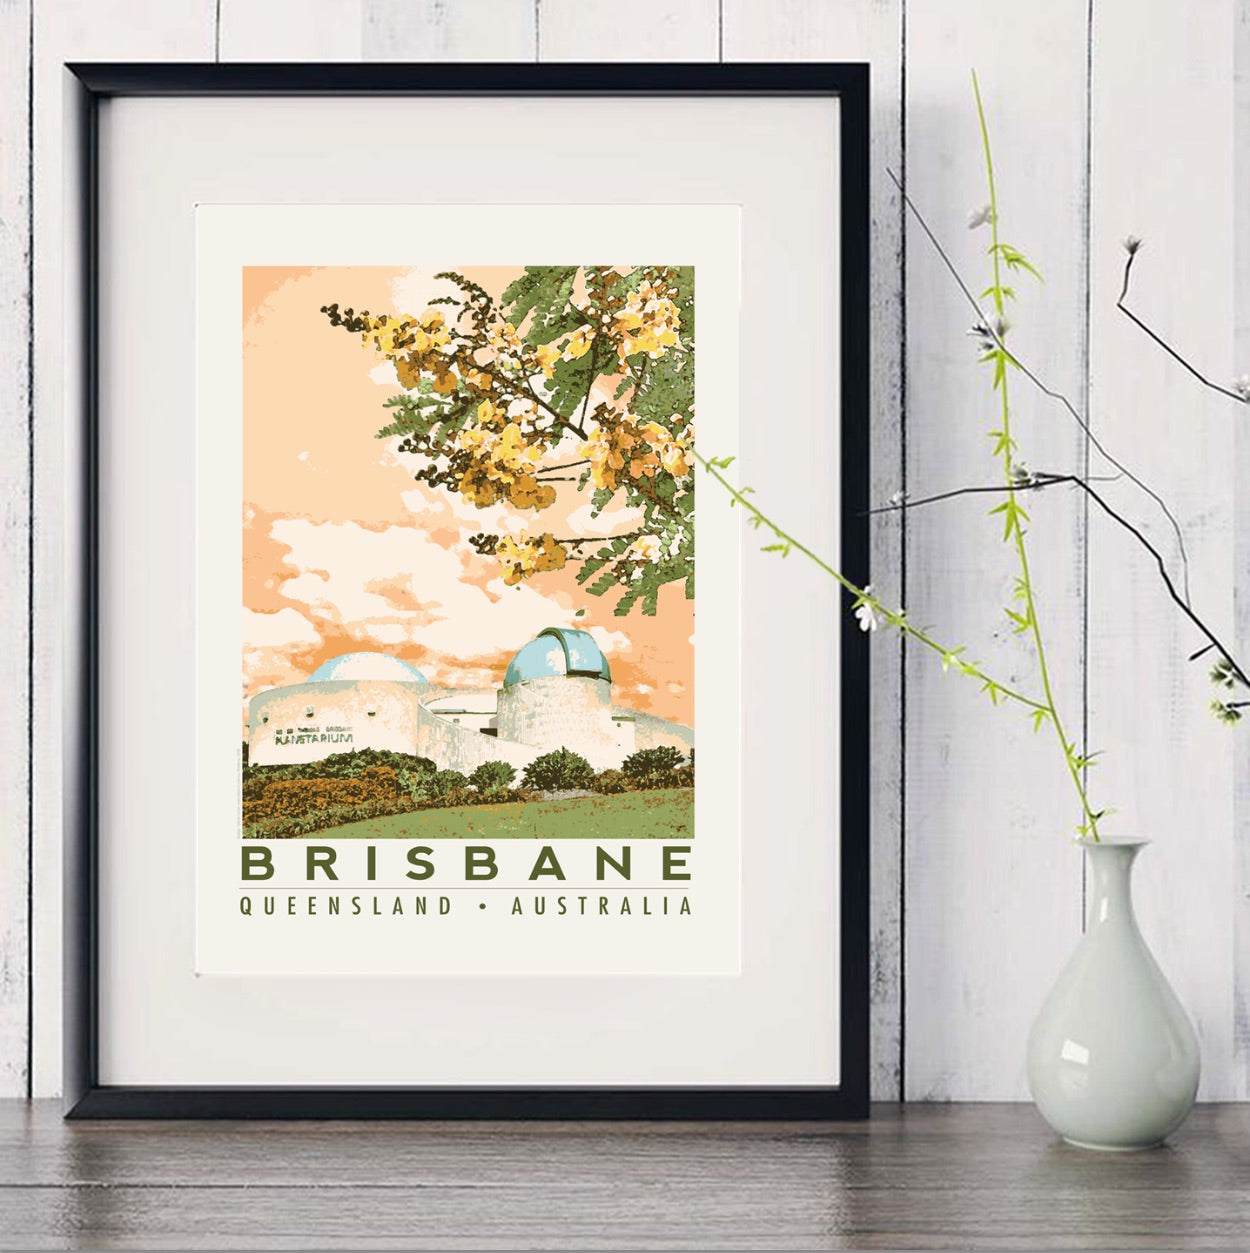 Brisbane Planetarium art print in black frame with white vase